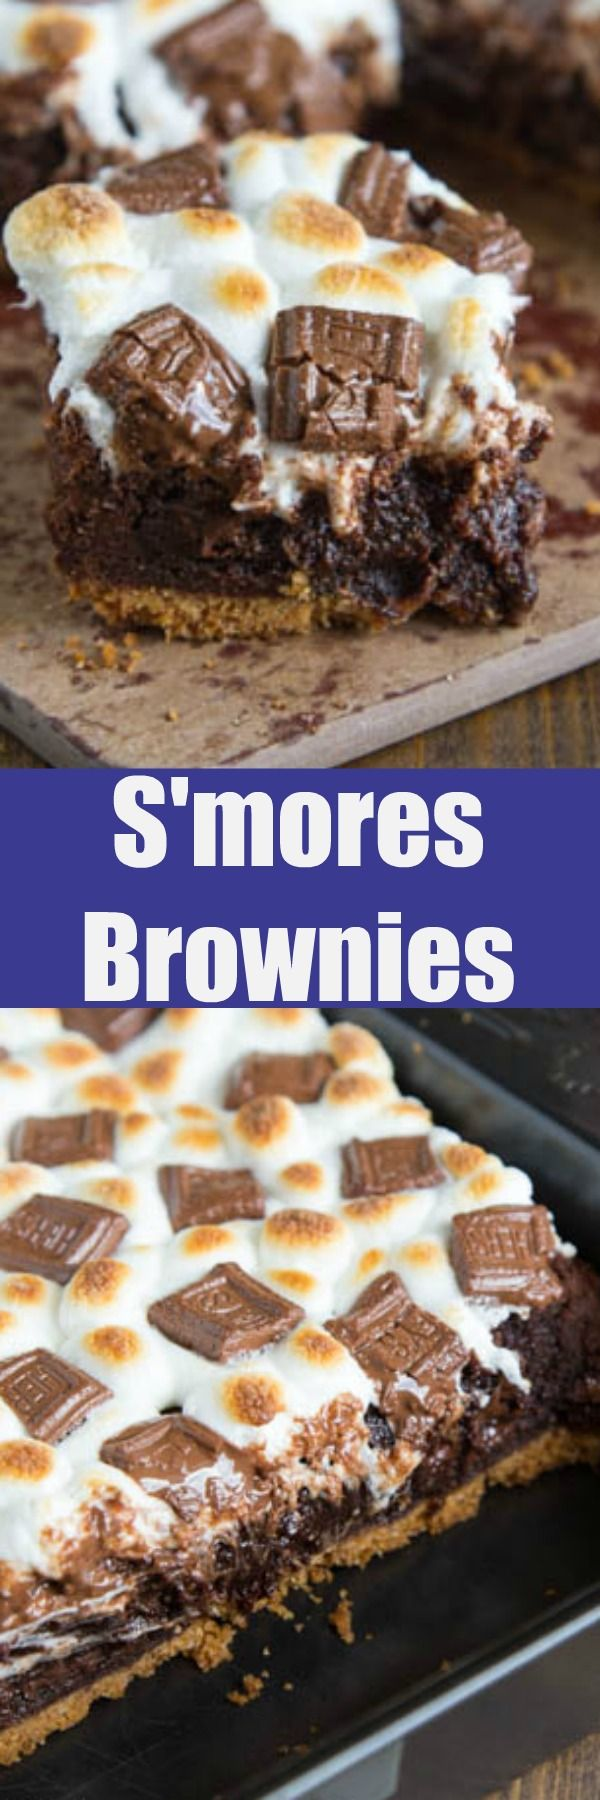 S'mores Brownies Rich, fudgy homemade brownies on a